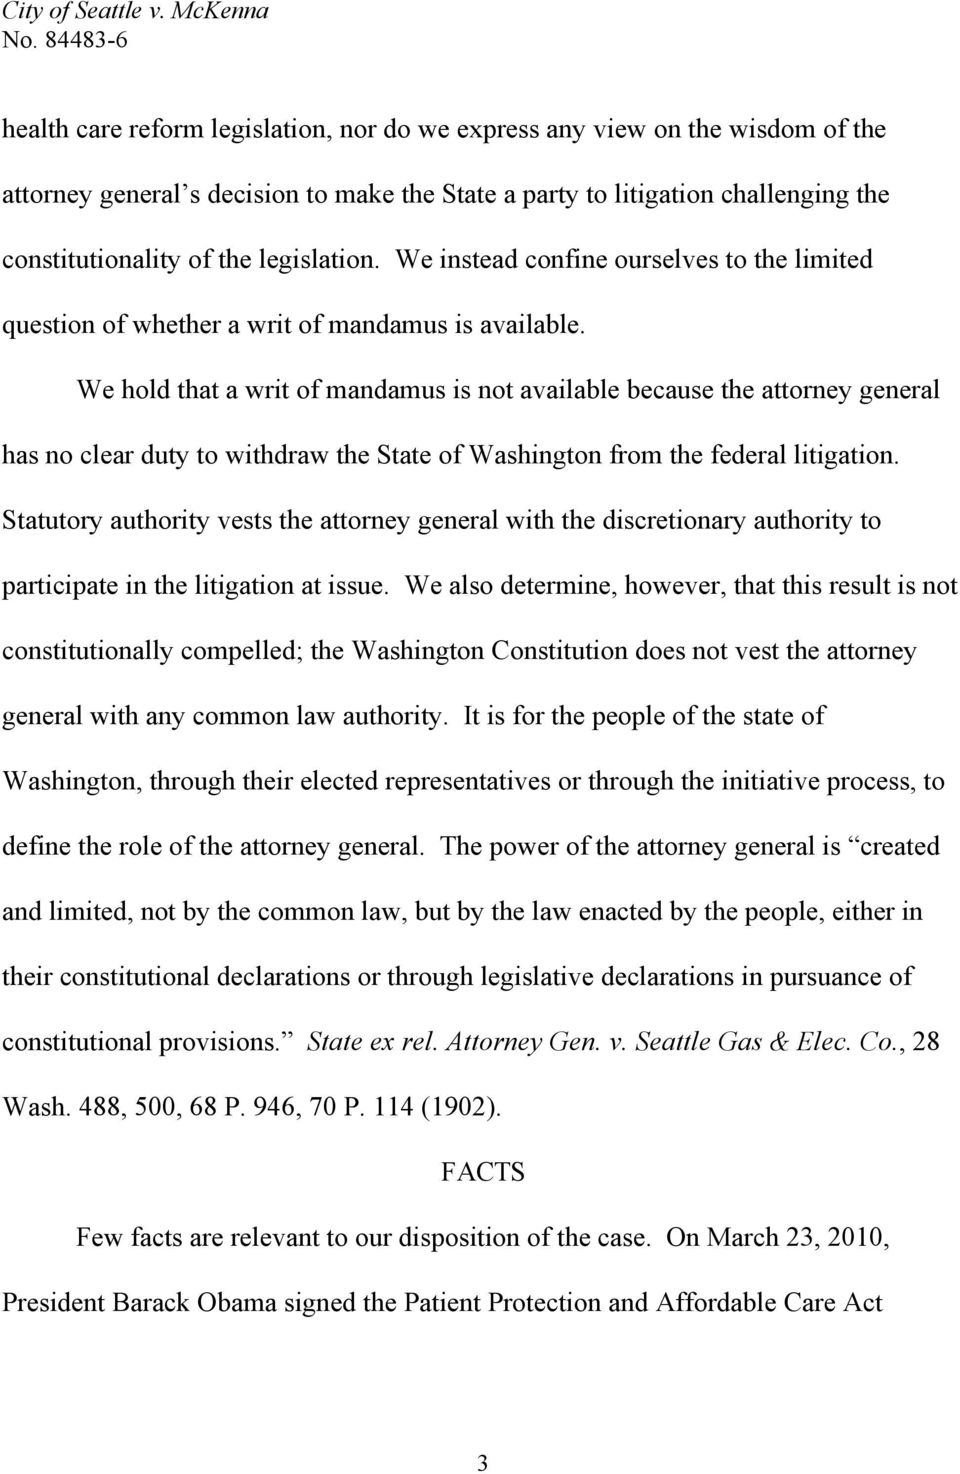 We hold that a writ of mandamus is not available because the attorney general has no clear duty to withdraw the State of Washington from the federal litigation.